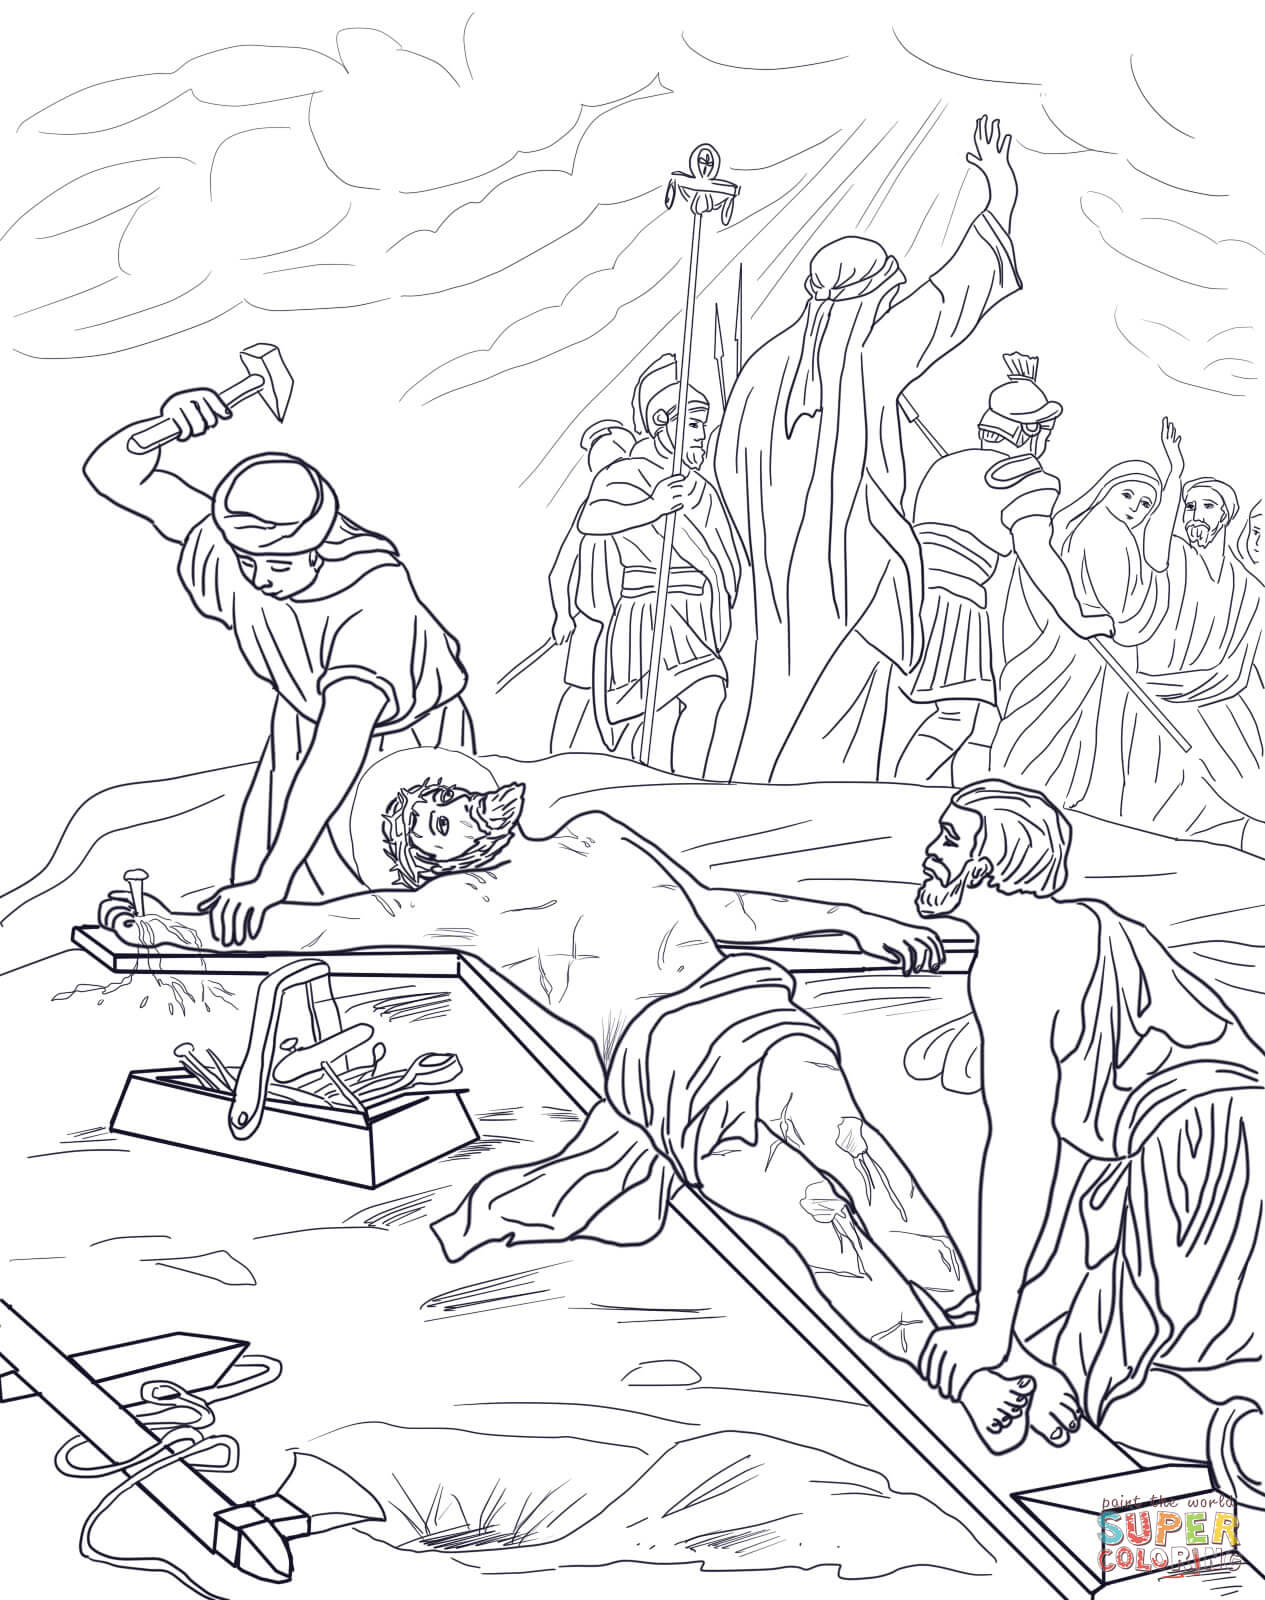 Good Friday coloring page